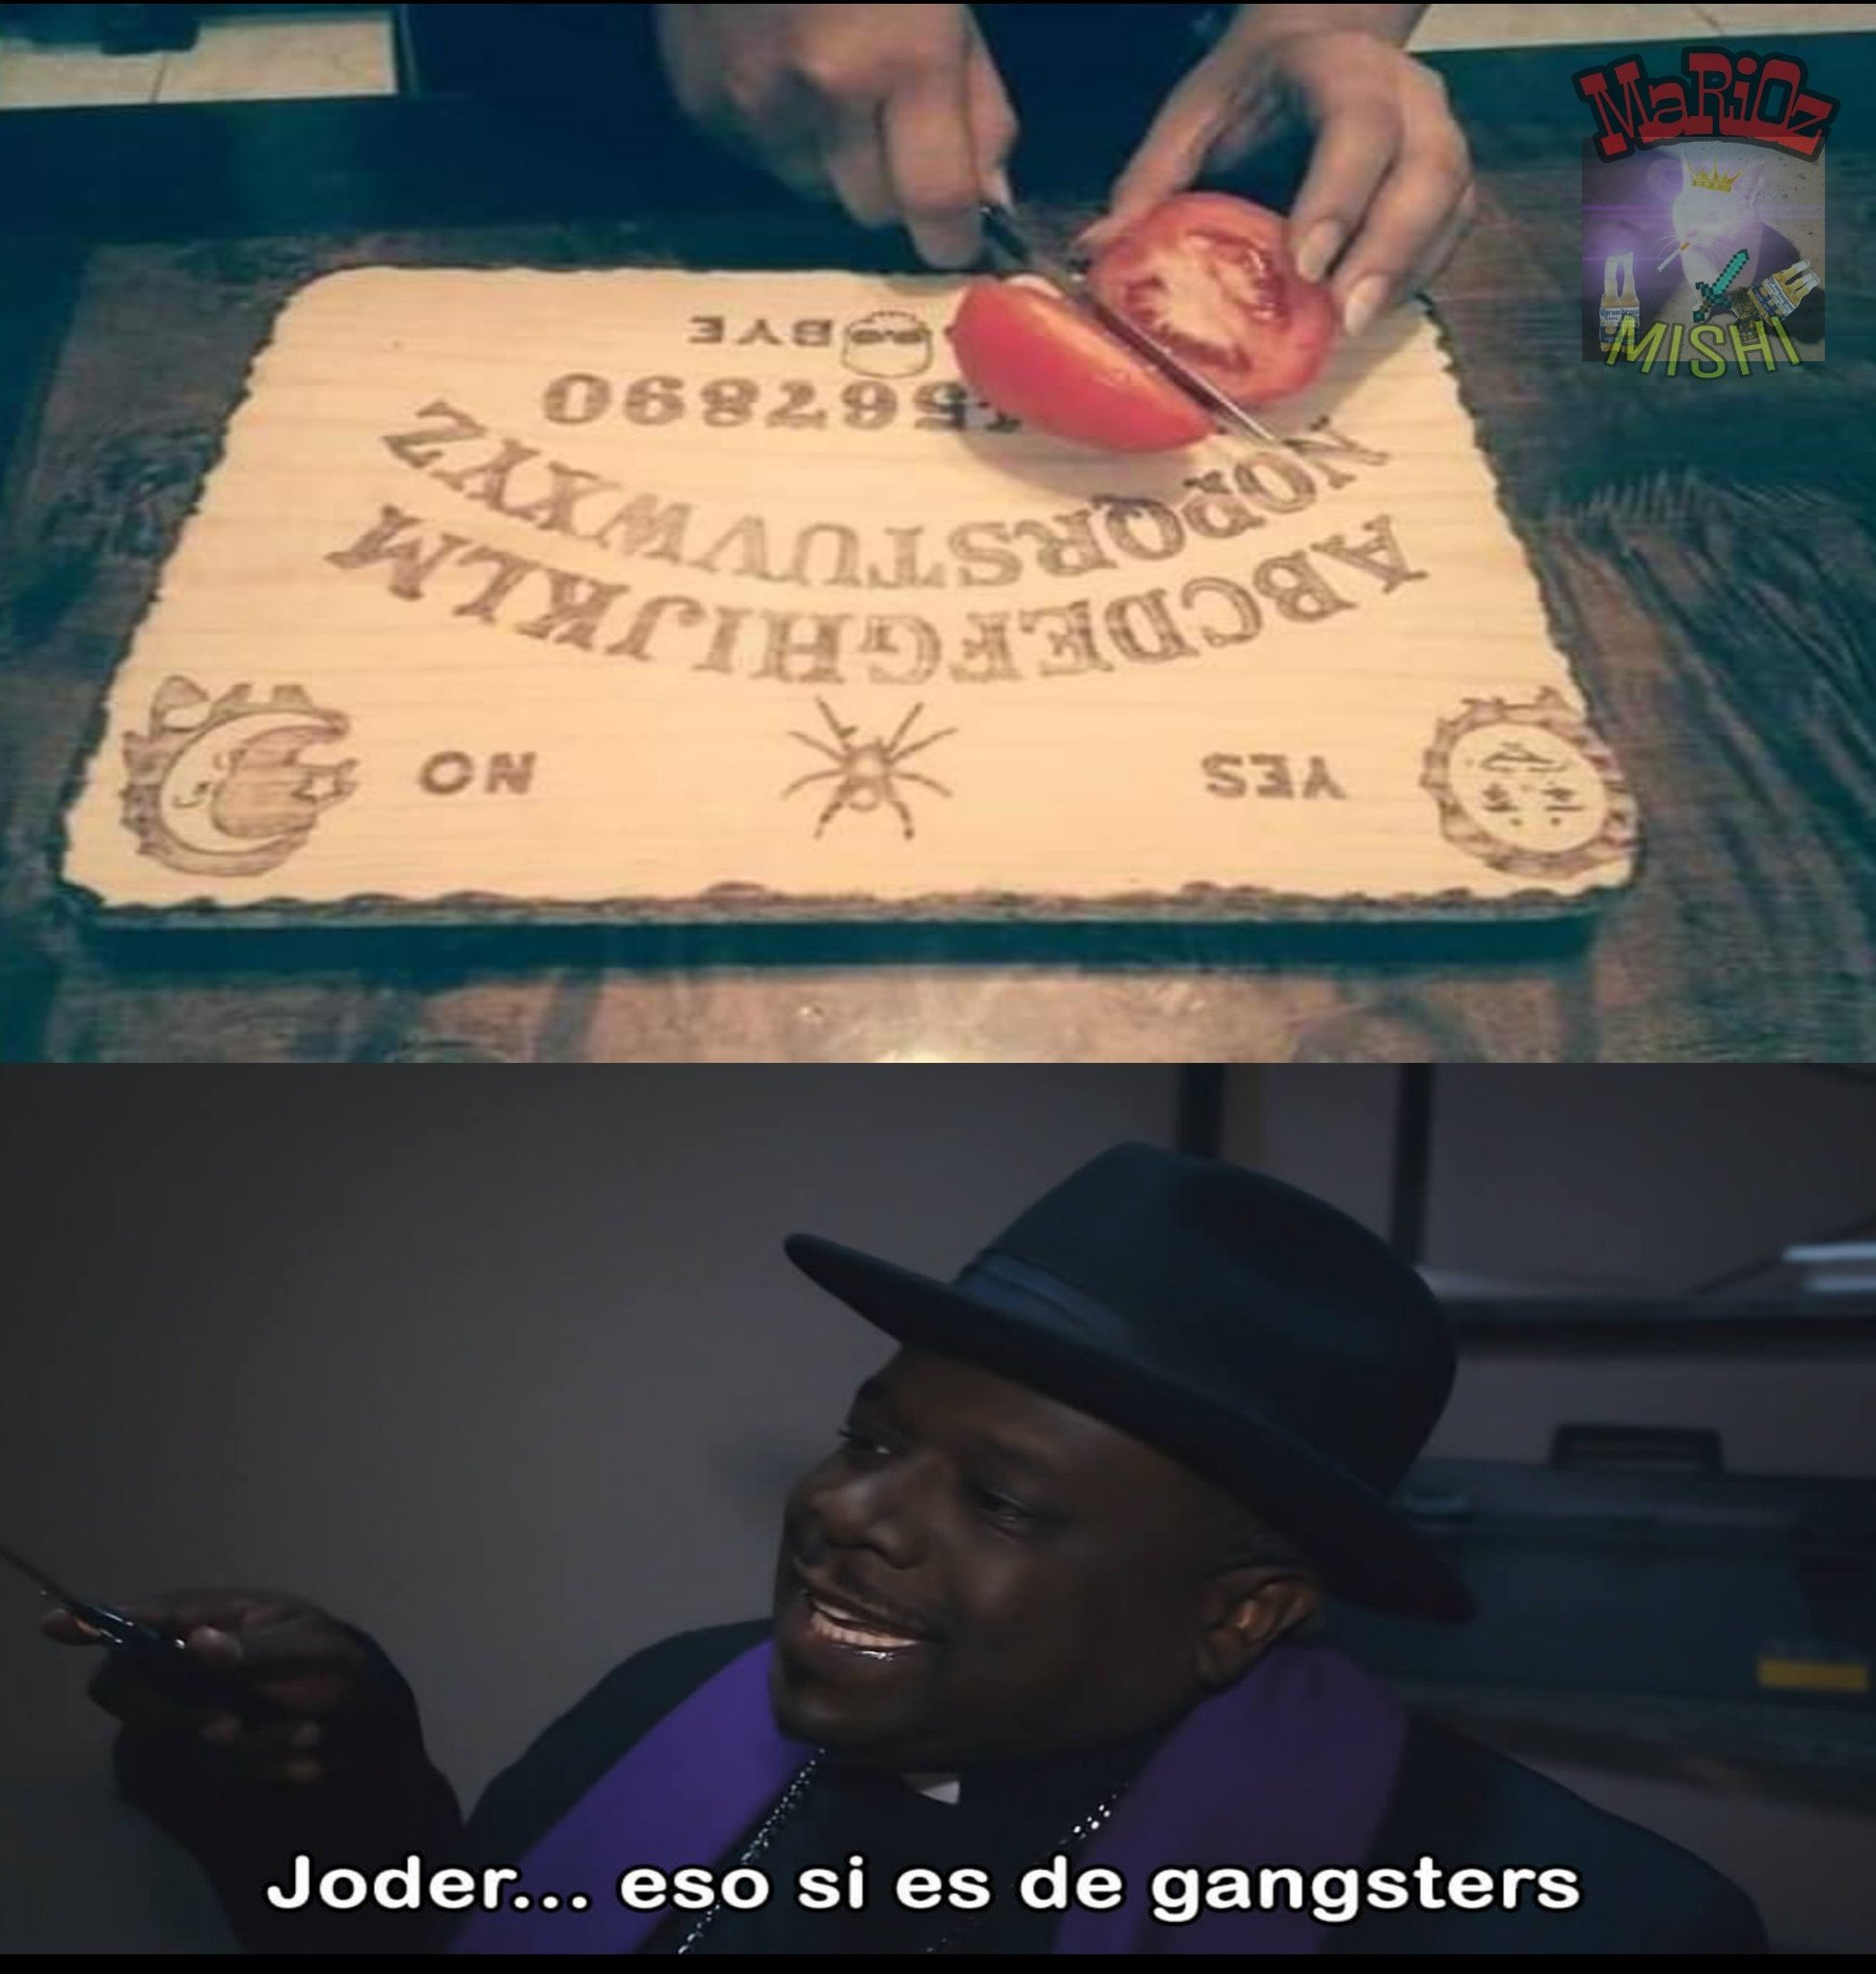 Madre mía willy - meme